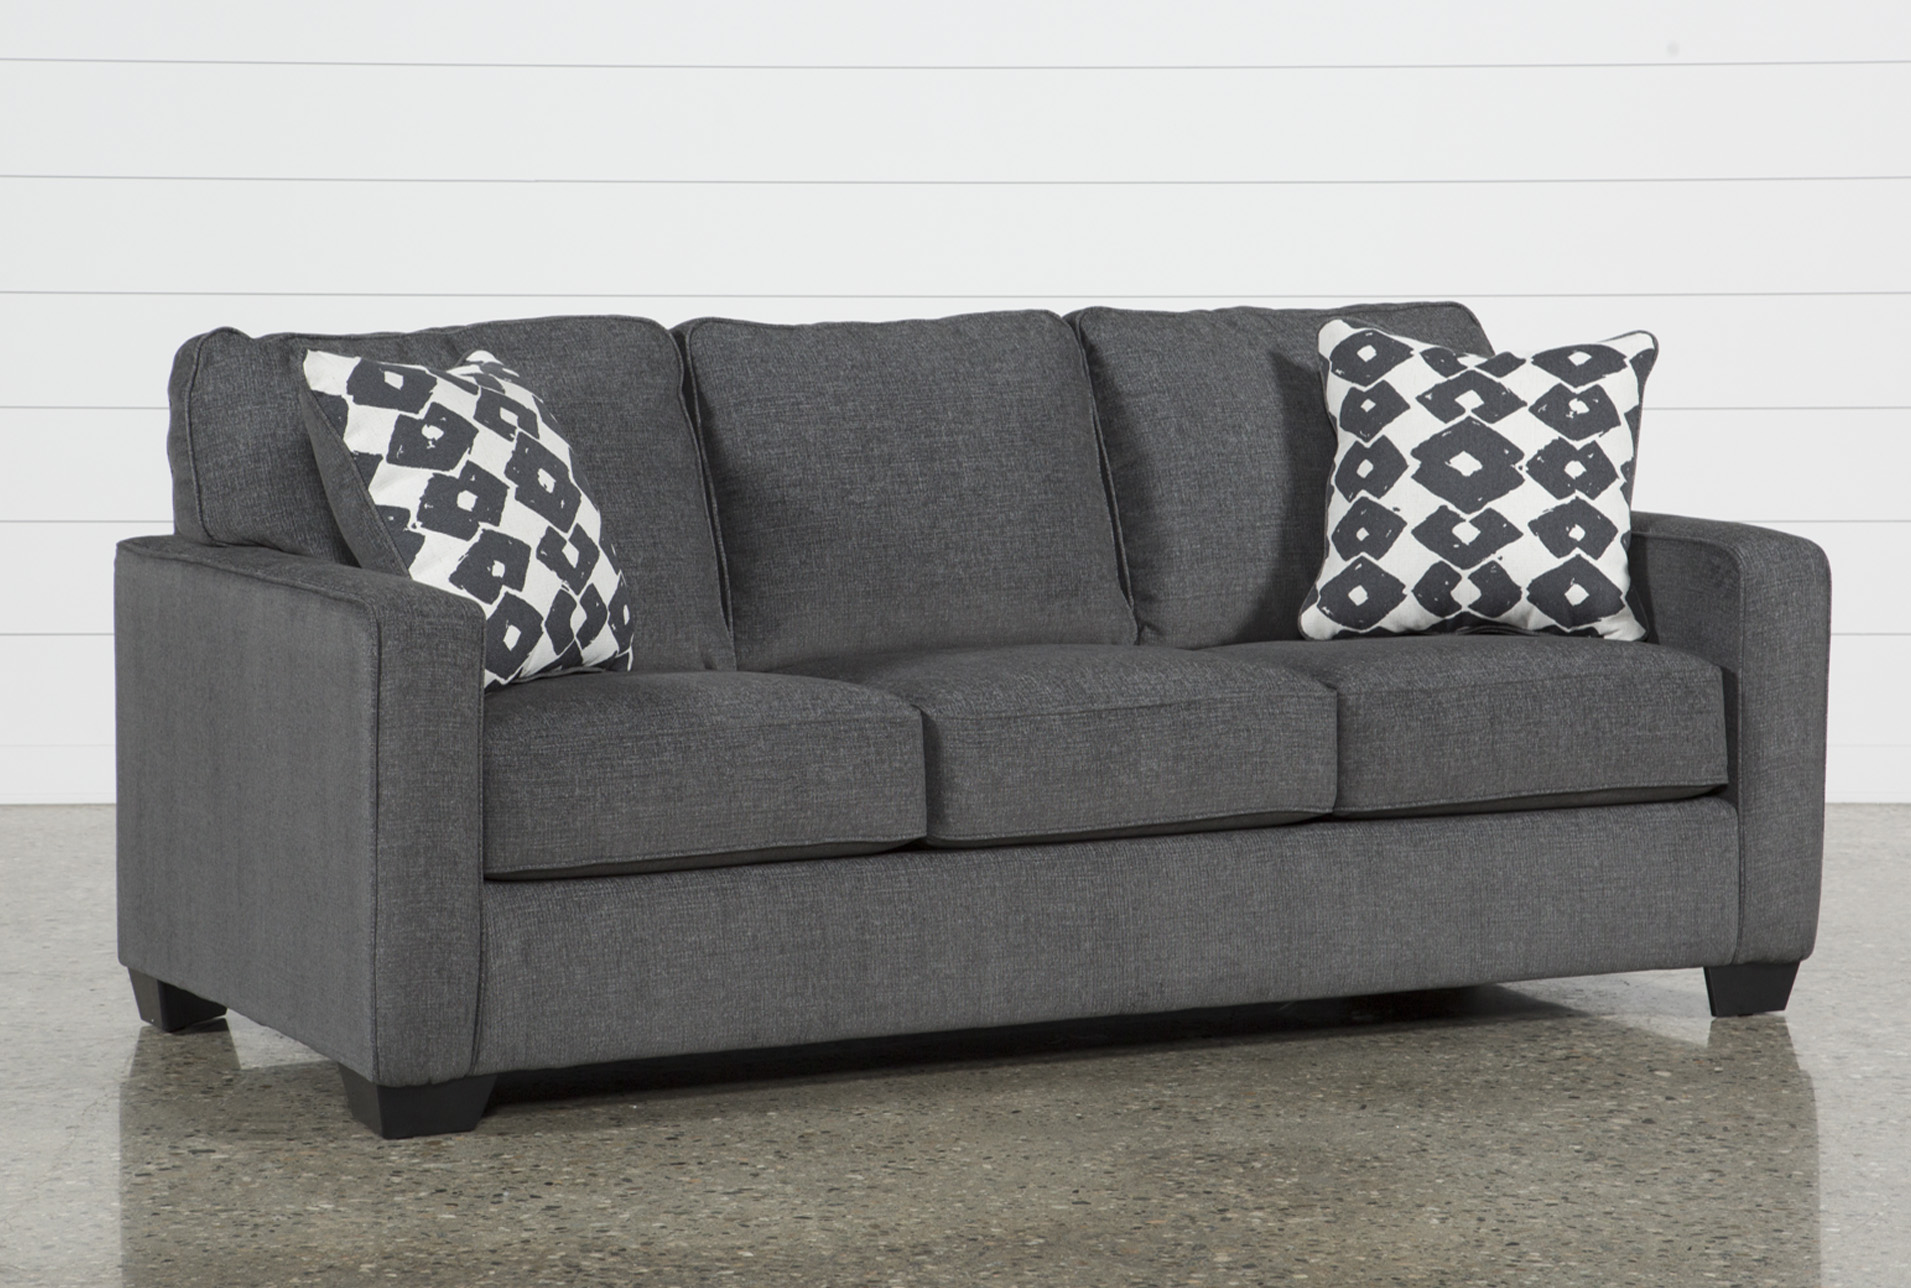 sofa beds free assembly with delivery living spaces rh livingspaces com Leather Sectional Sofas On Sale Leather Sectional Sofas On Sale